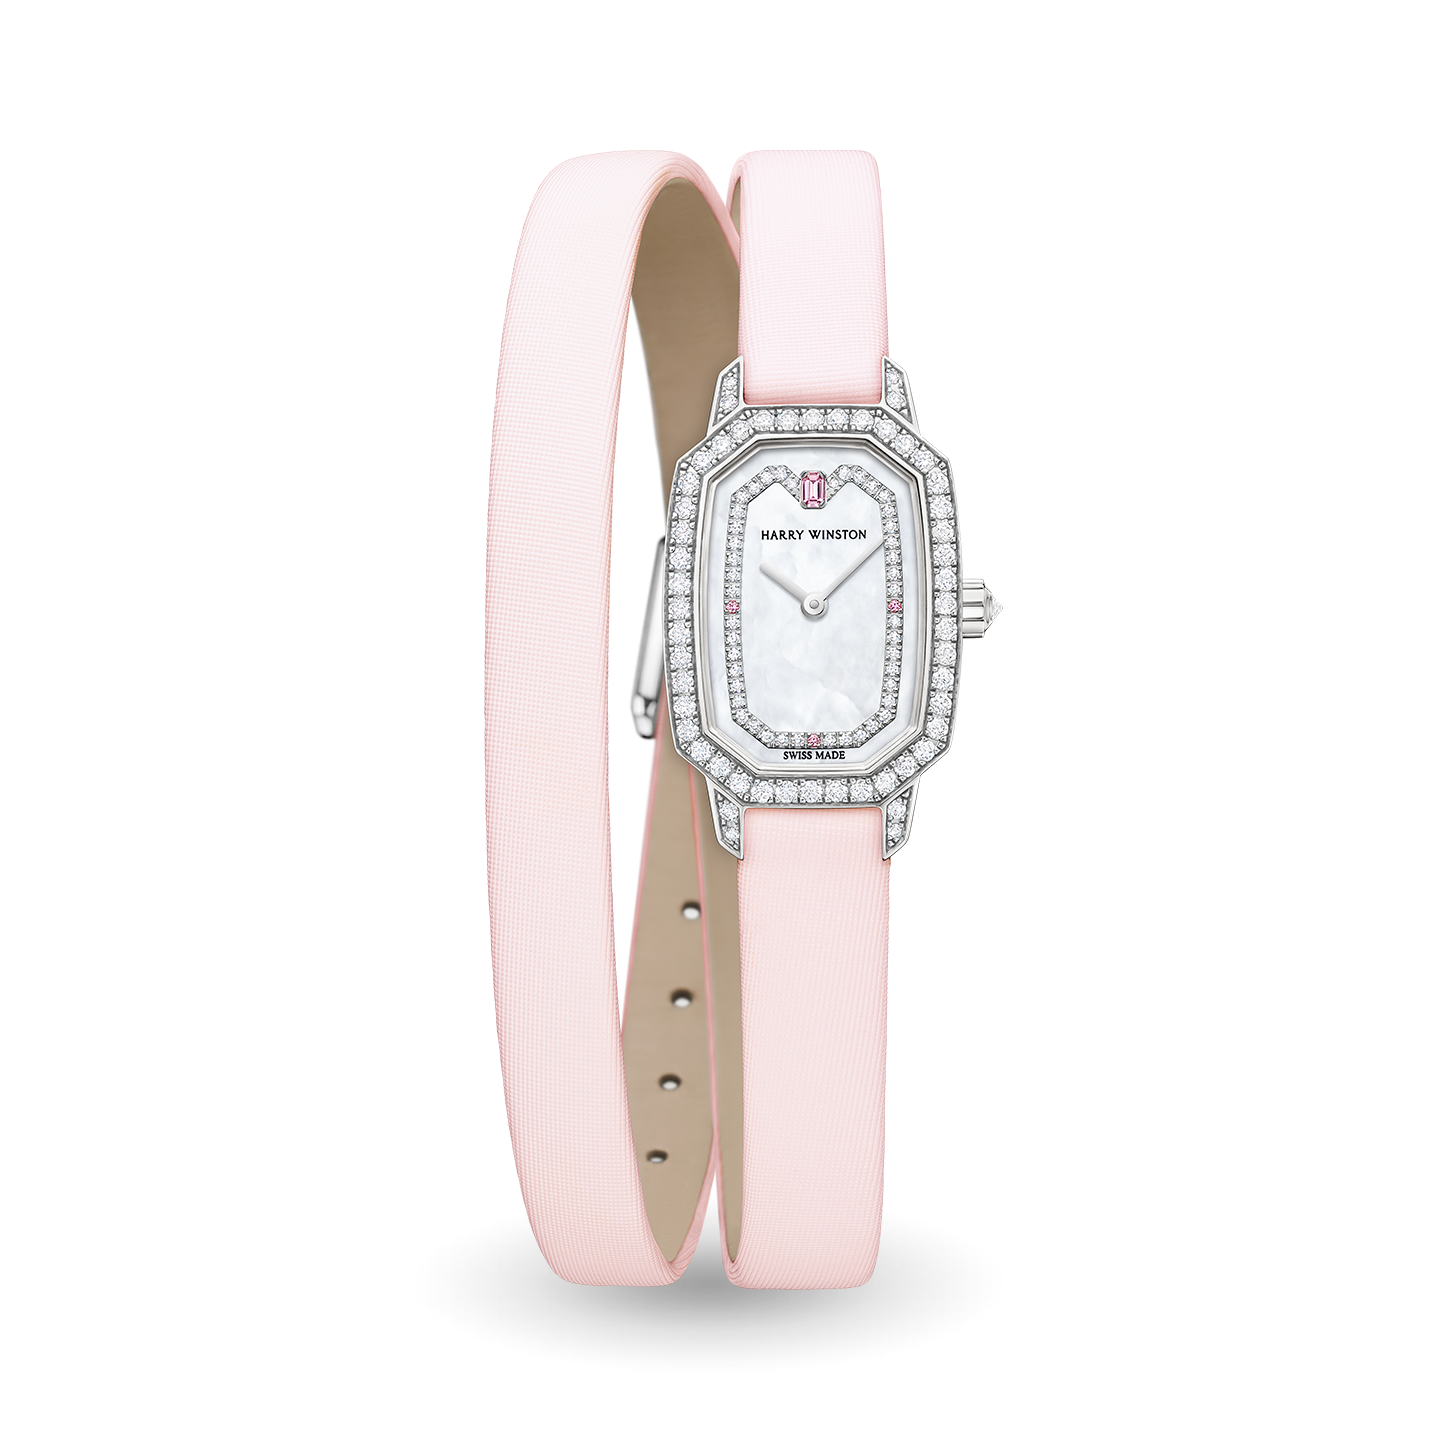 Harry Winston Emerald, product image 1